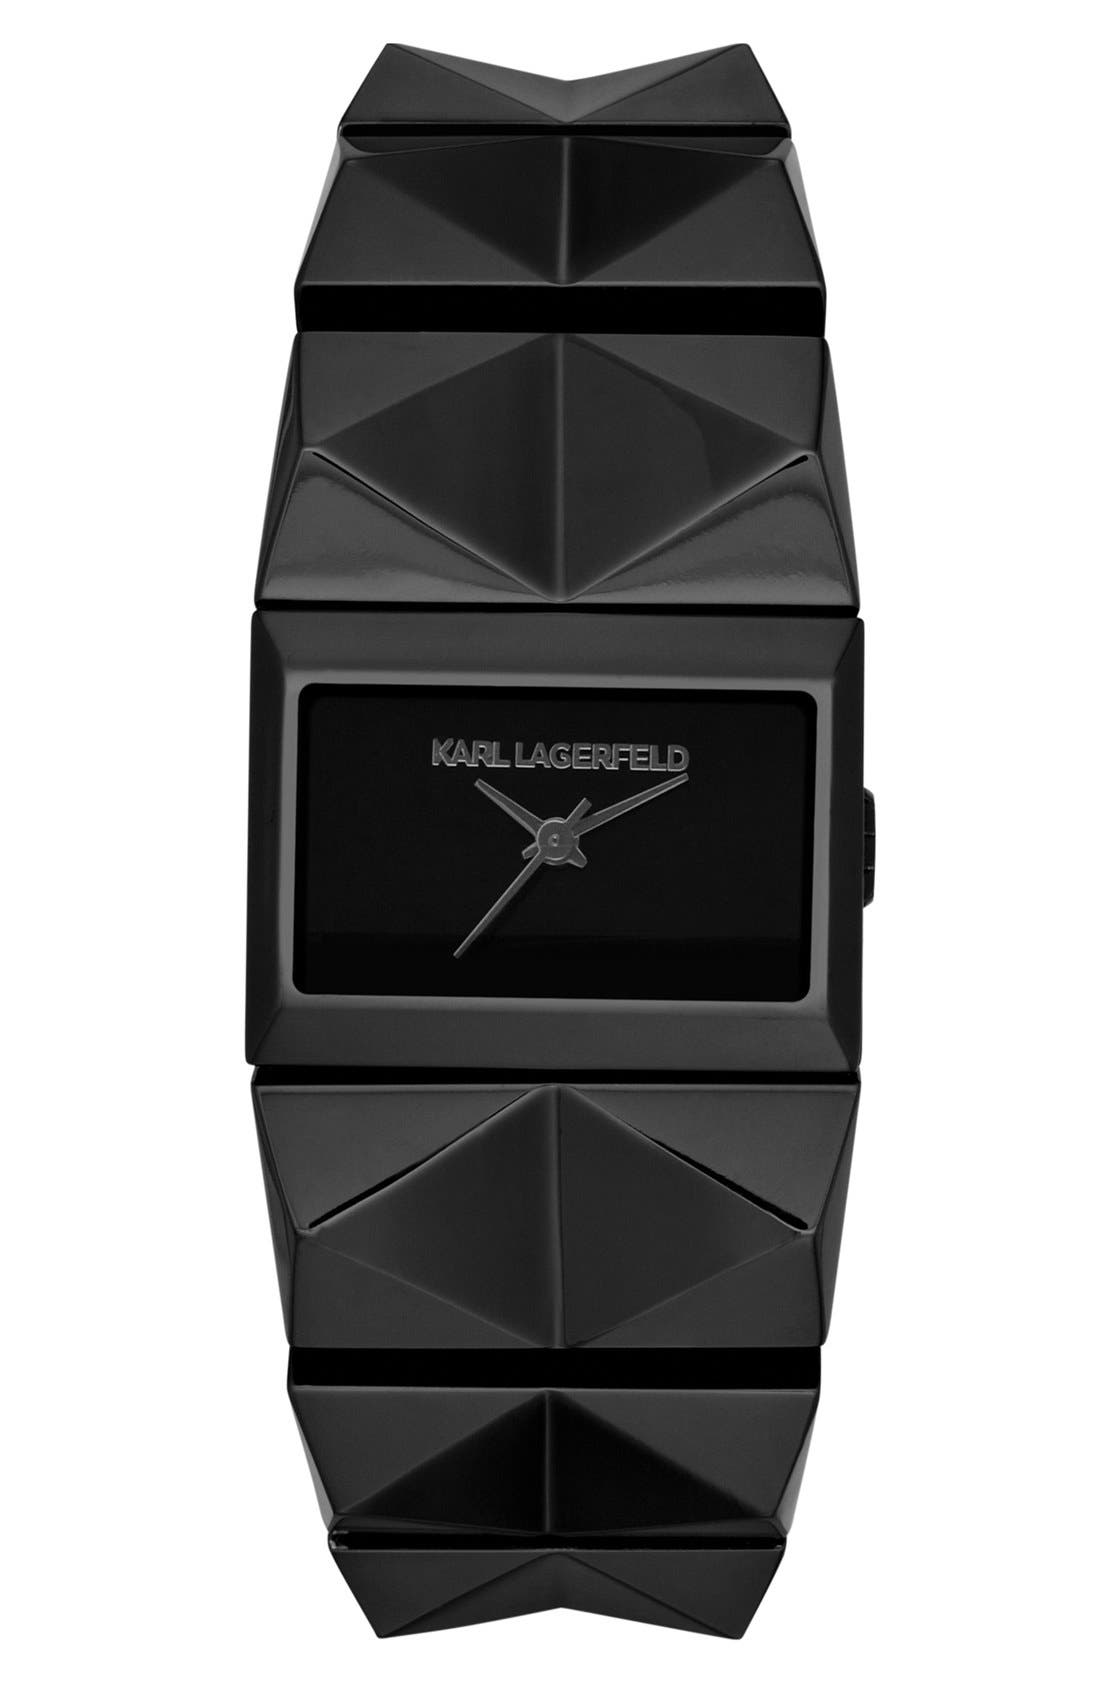 Alternate Image 1 Selected - KARL LAGERFELD 'Perspektive' Pyramid Bracelet Watch, 27mm x 20mm